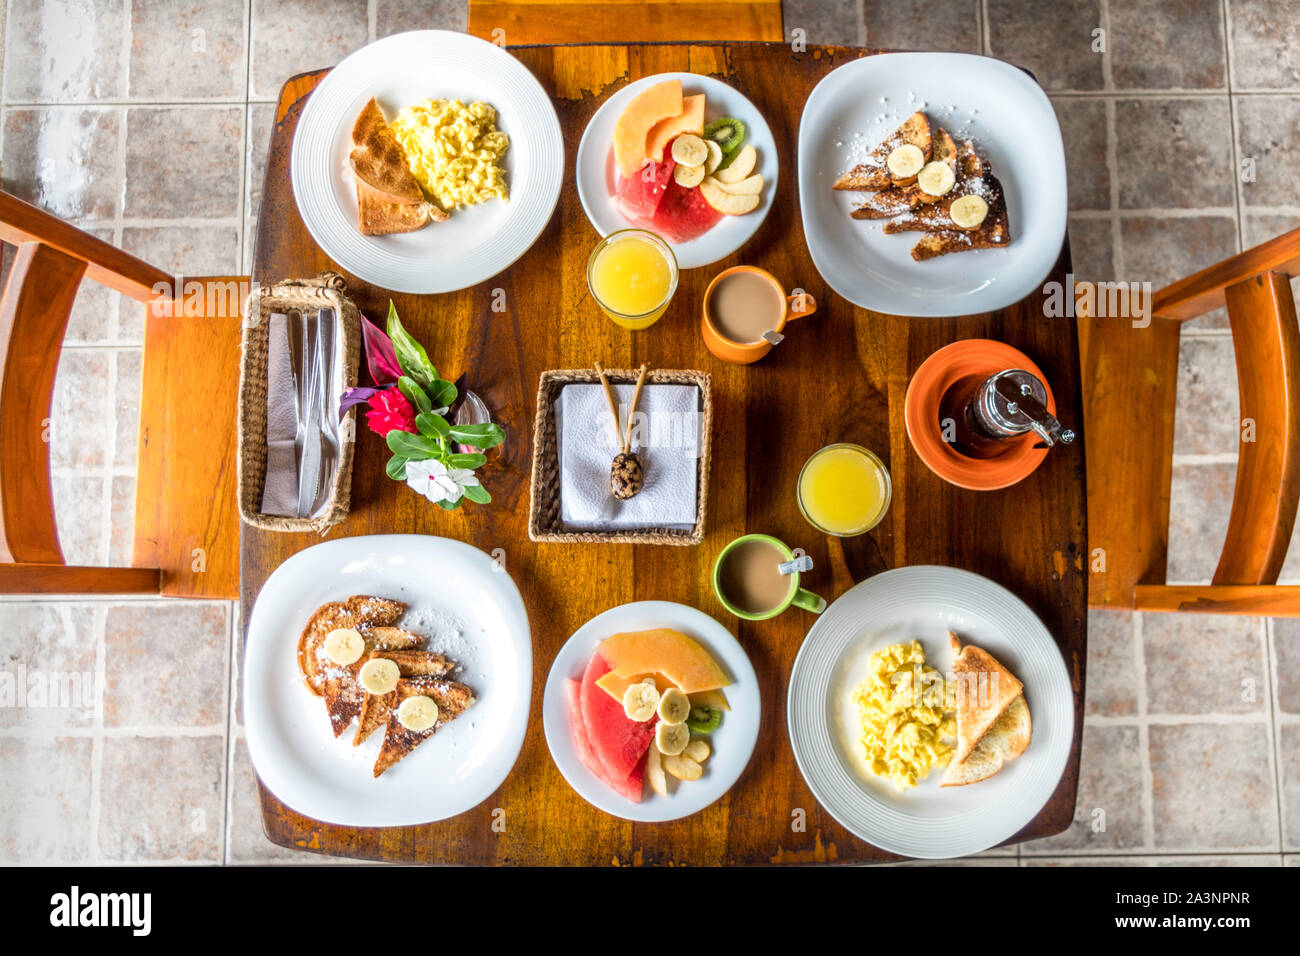 Full American Breakfast with coffee, orange juice, fresh fruits, eggs and french toasts for two Stock Photo